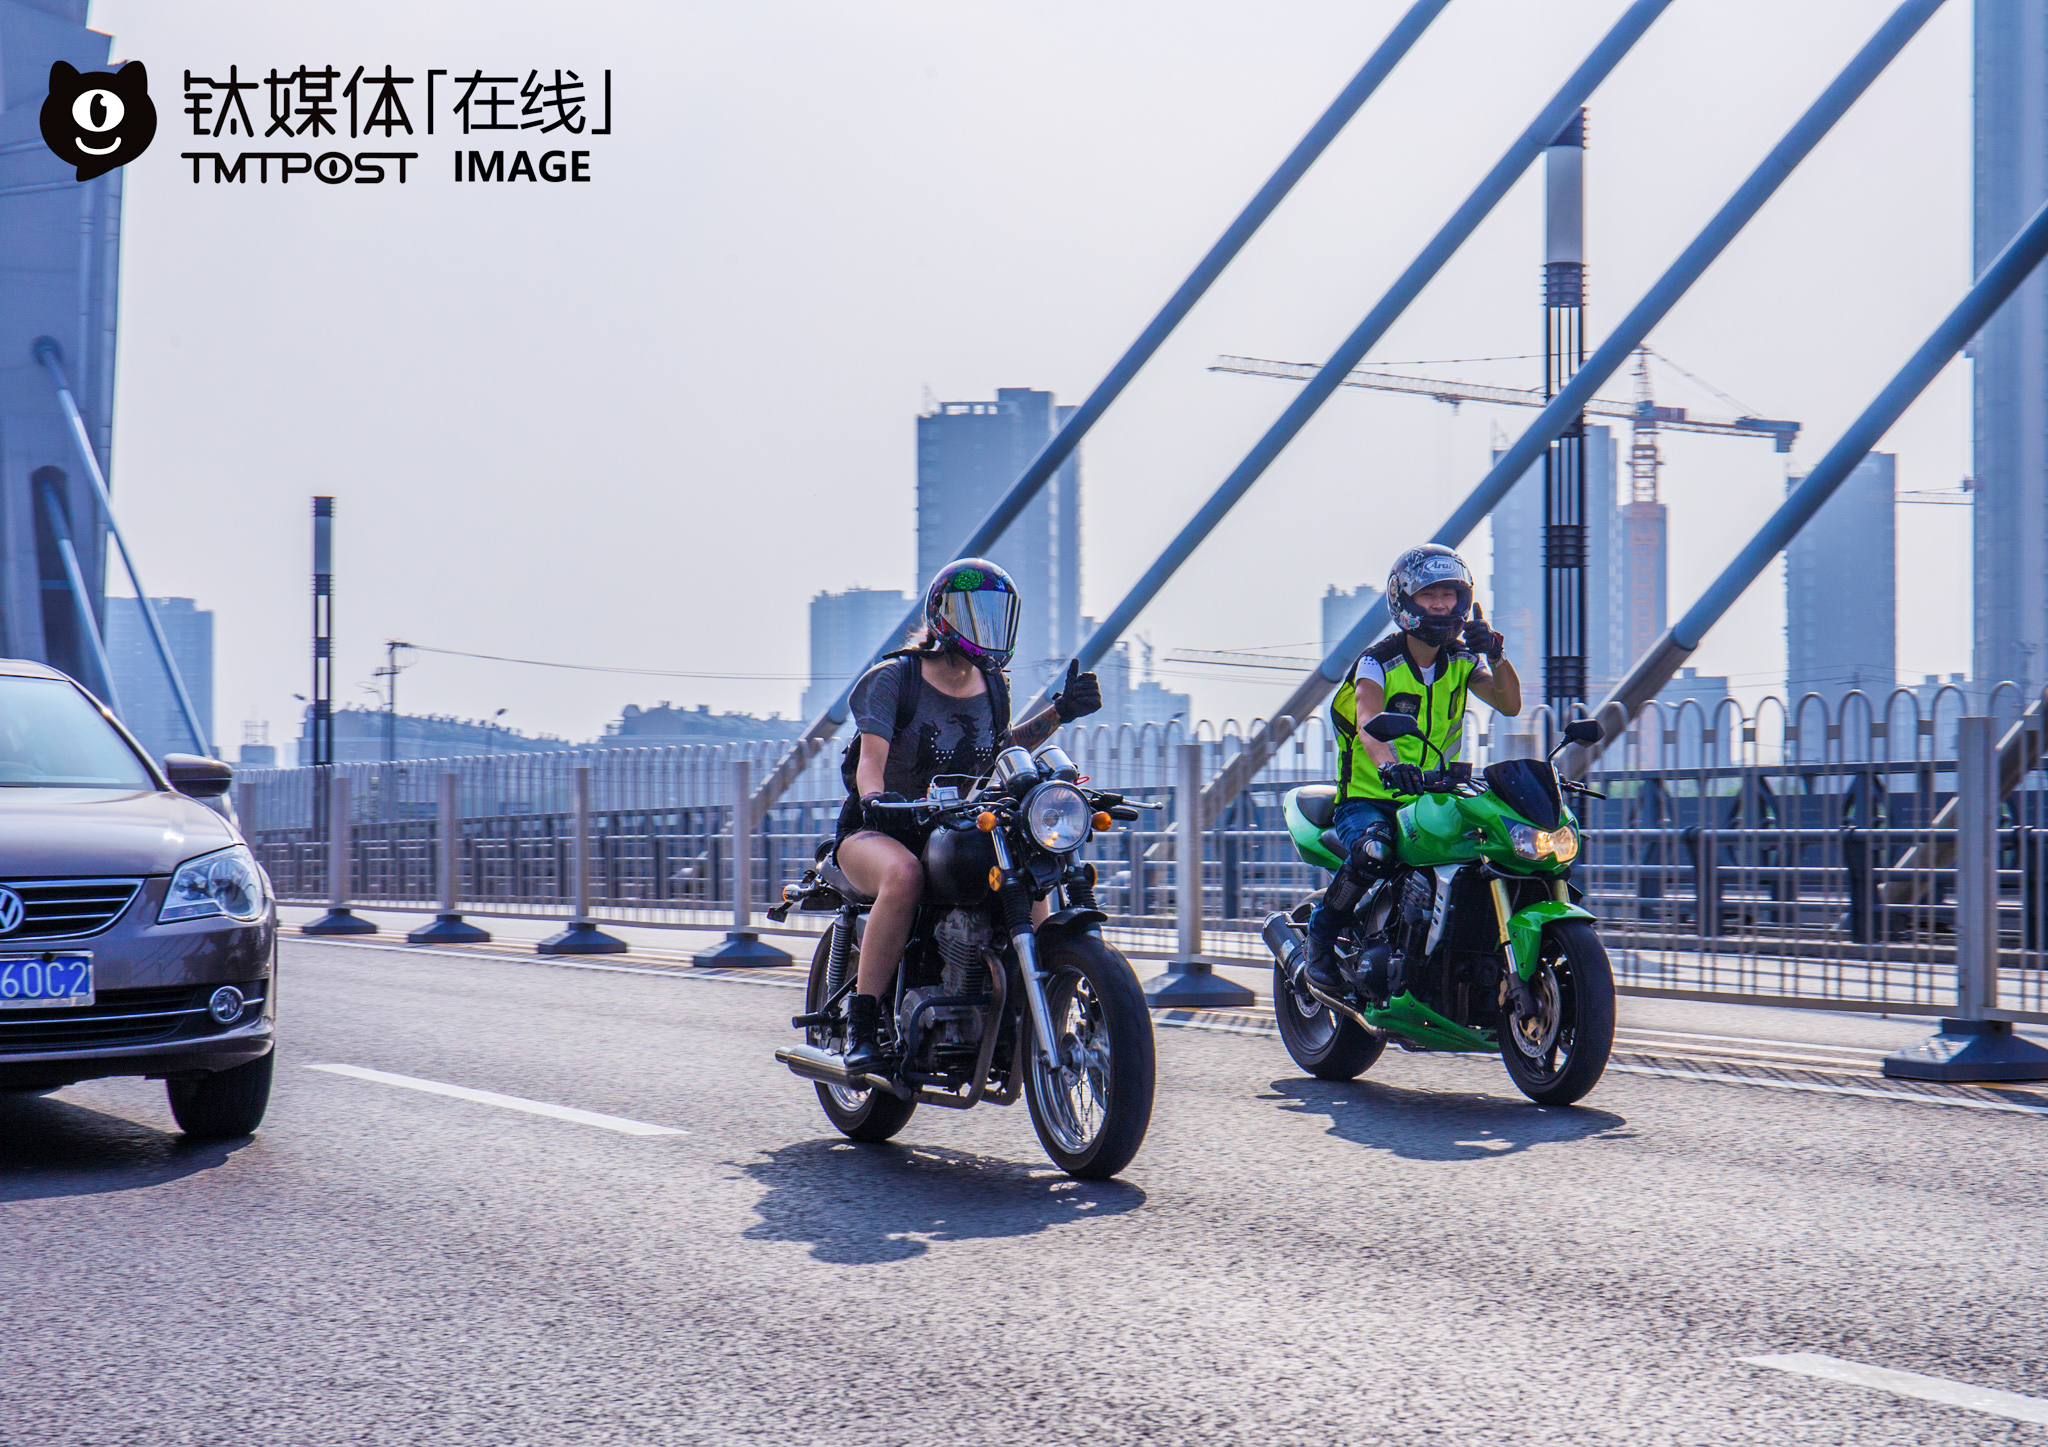 """Bu Yi (the motorcycle rider to the right of the picture) was riding on the Tongzhou north Tunnel Bridge, and showing his greetings to another motorcycle rider he encountered on the road. """"If other motorcycle riders found that I didn't wear protective clothing or ride on the wrong road, they would approach and barge me,"""" he explained. For him, strict intendance among motorcycle riders will not only improve our safety awareness, but also improve the riding environment for motorcycle riders, and this is what he referred to as the """"rider spirit"""". According to transportation rules in Beijing, riders could ride motorcycles with Beijing-A plate inside Beijing, but they could not ride motorcycles with Beijing-B plate inside the fourth ring."""